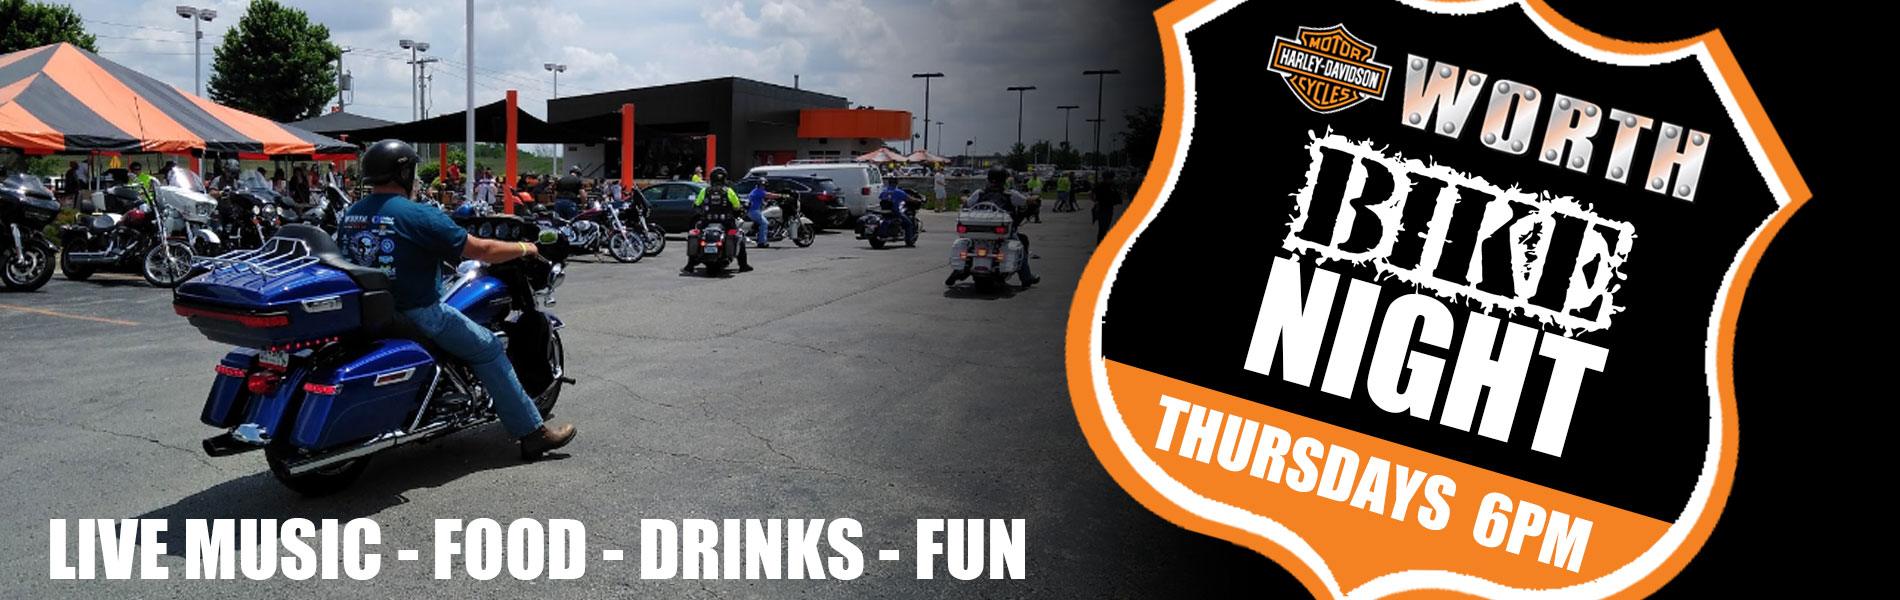 Kansas City Harley-Davidson Bike Night